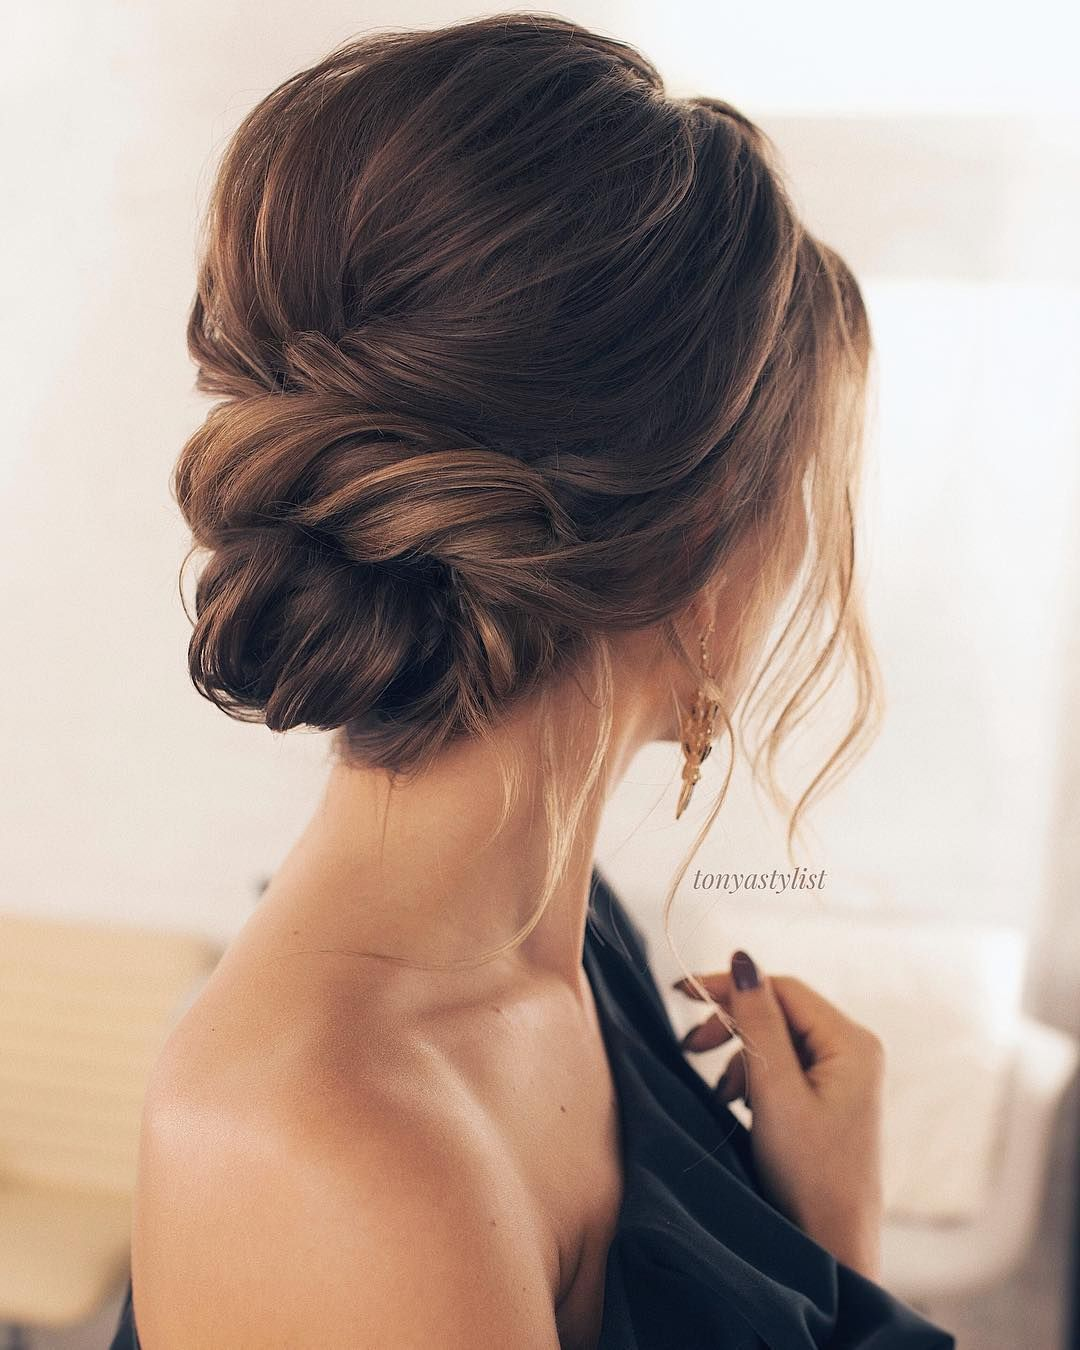 gorgeous wedding updo hairstyle to inspire you | hair